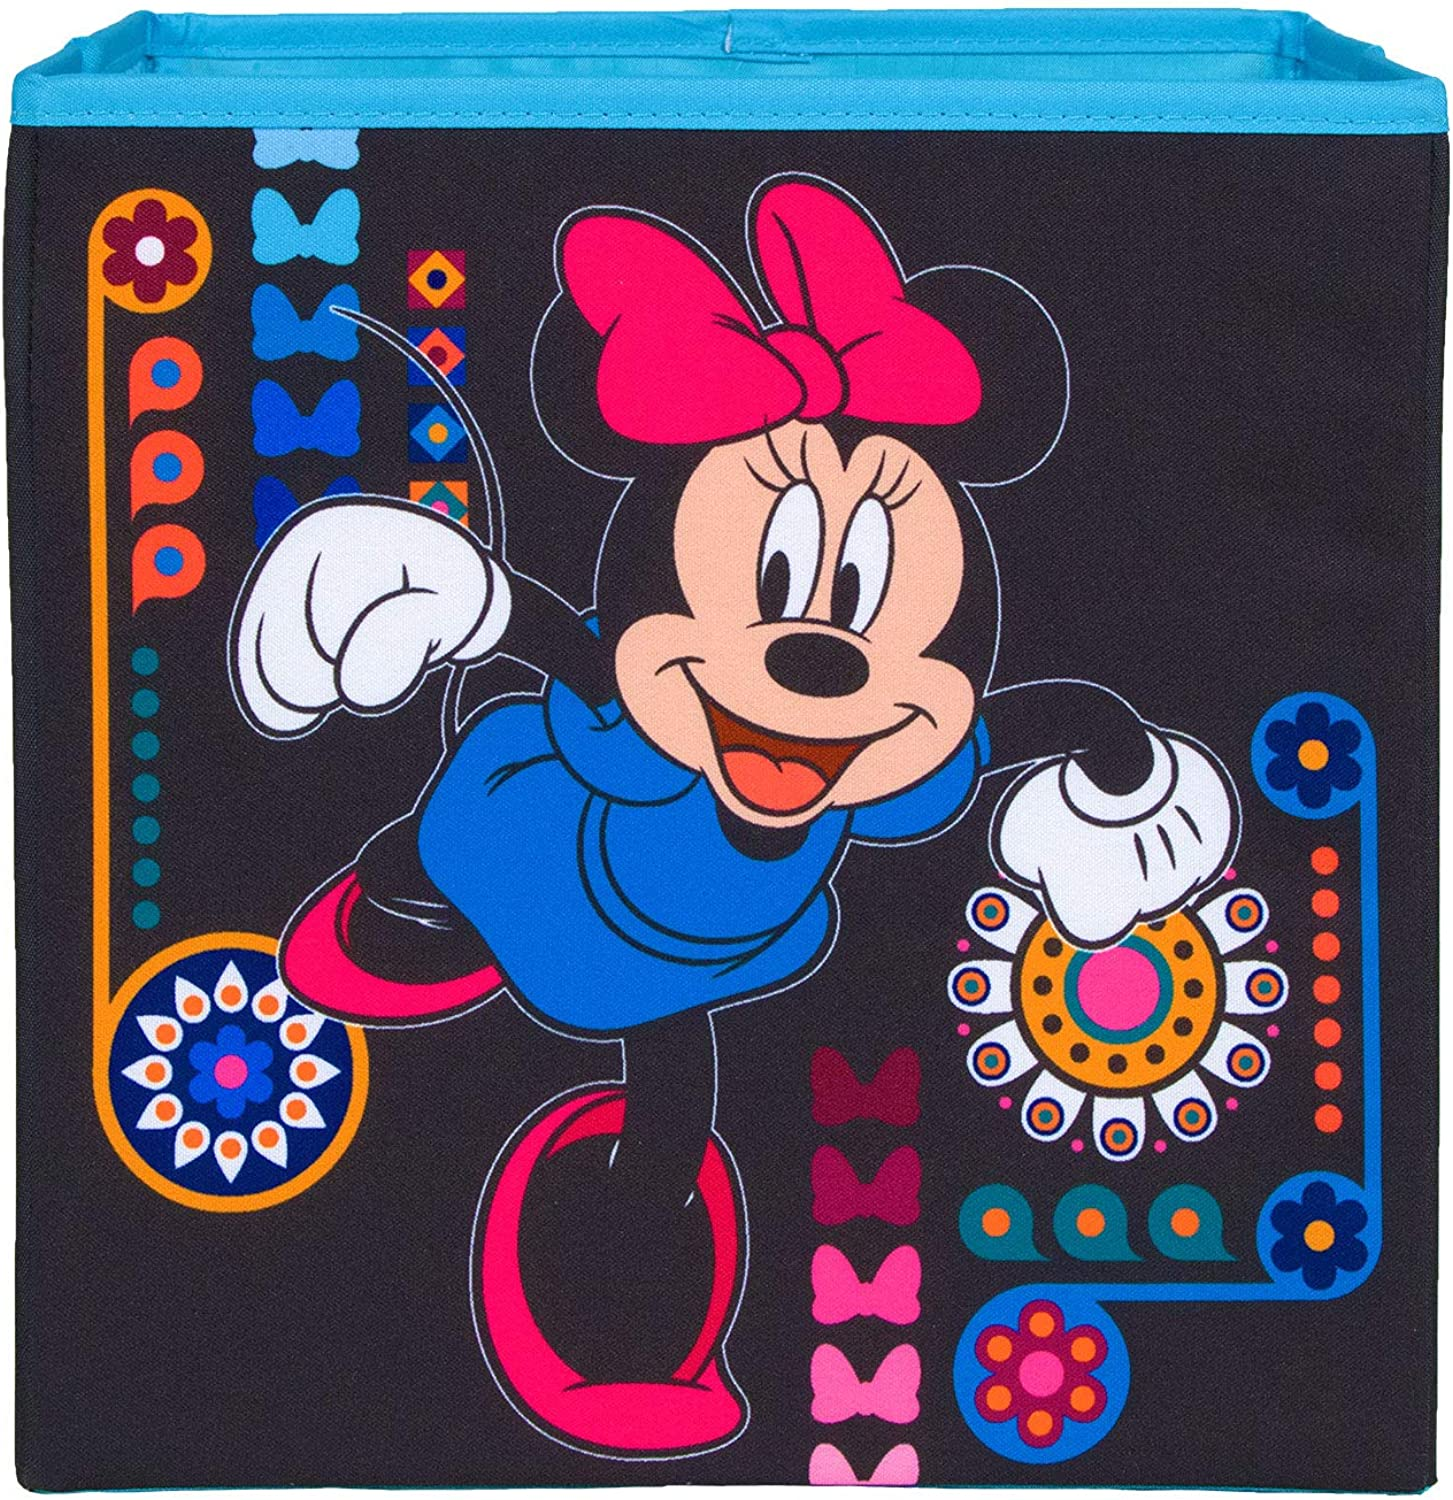 Everything Mary Minnie Mouse Collapsible Storage Bin by Disney - Cube Organizer for Closet, Kids Bedroom Box, Nursery Chest - Foldable Home Decor Basket Container with Strong Handles and Design